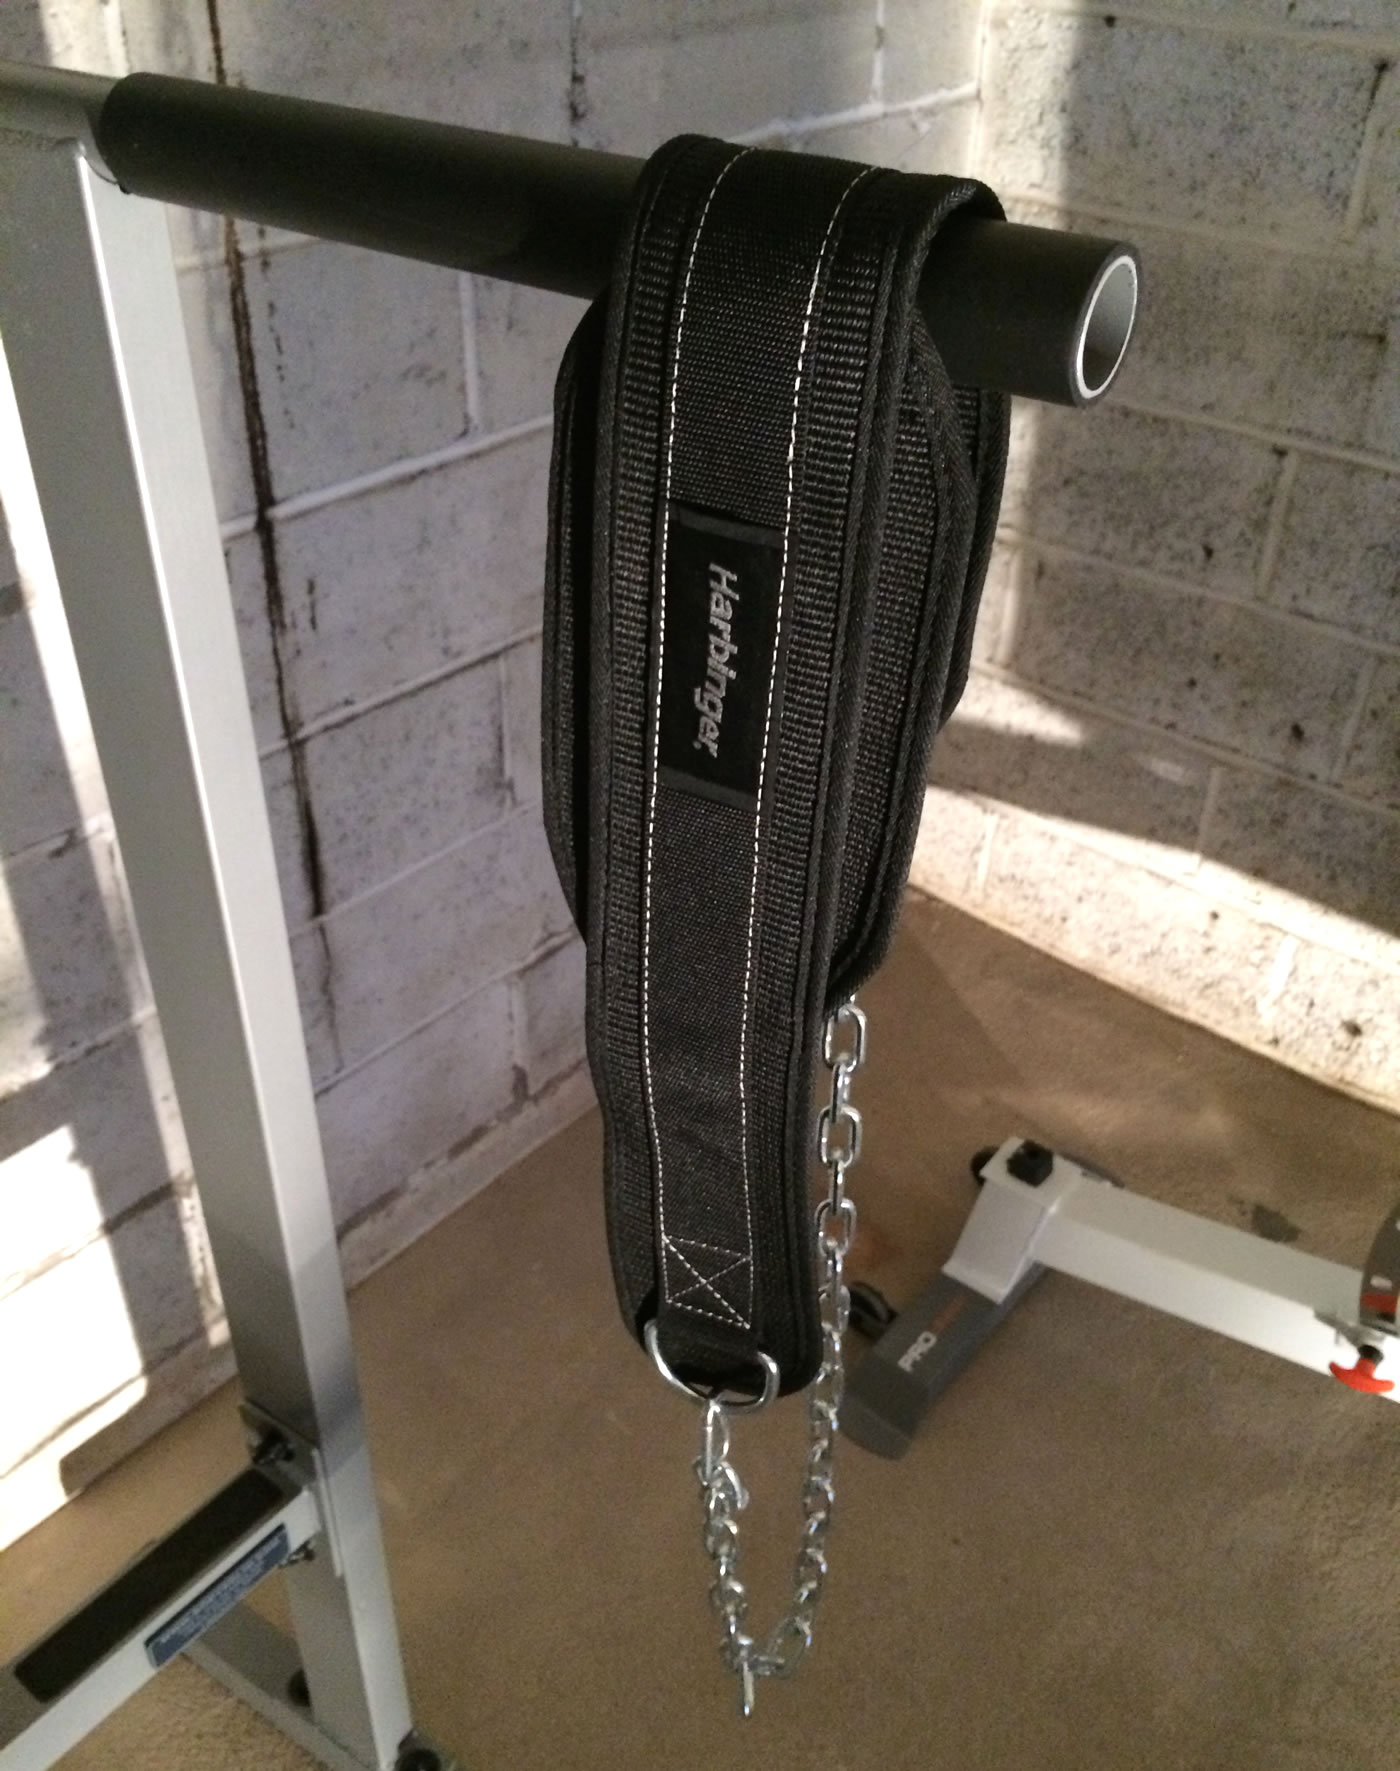 Building a home gym - harbinger dip belt.